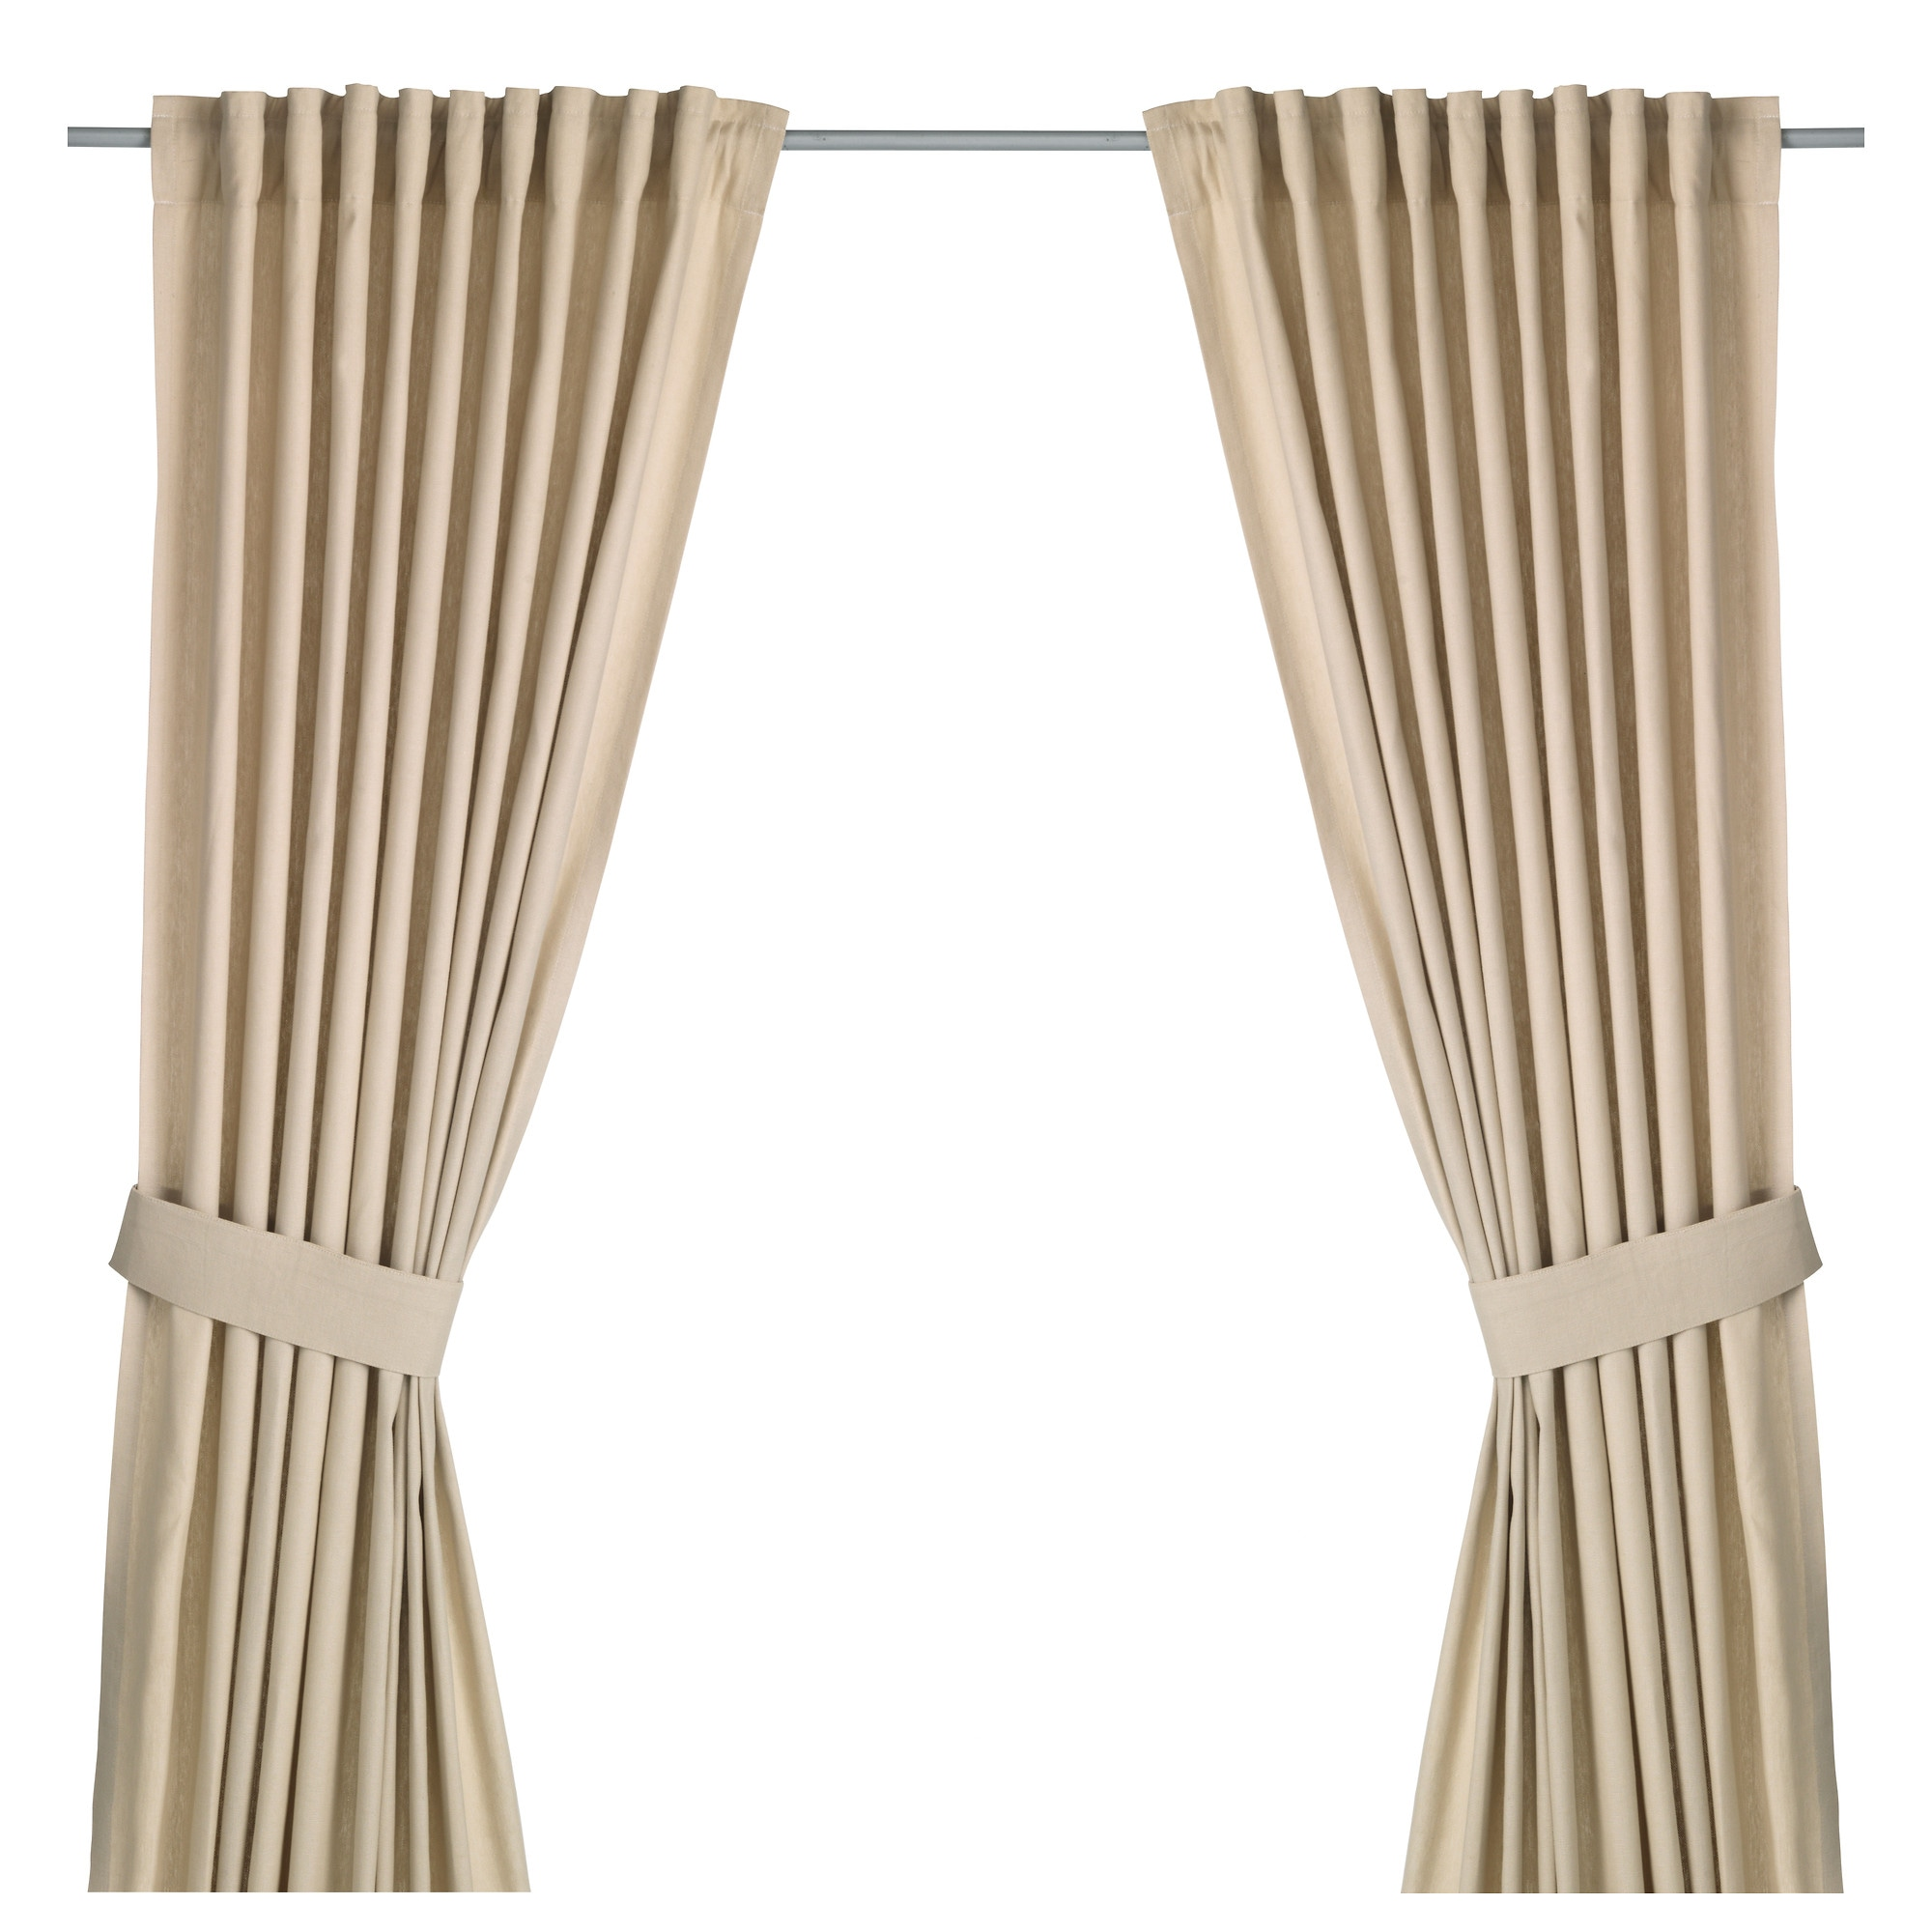 INGERT Curtains With Tie Backs, 1 Pair, Beige Length: 98  Part 34